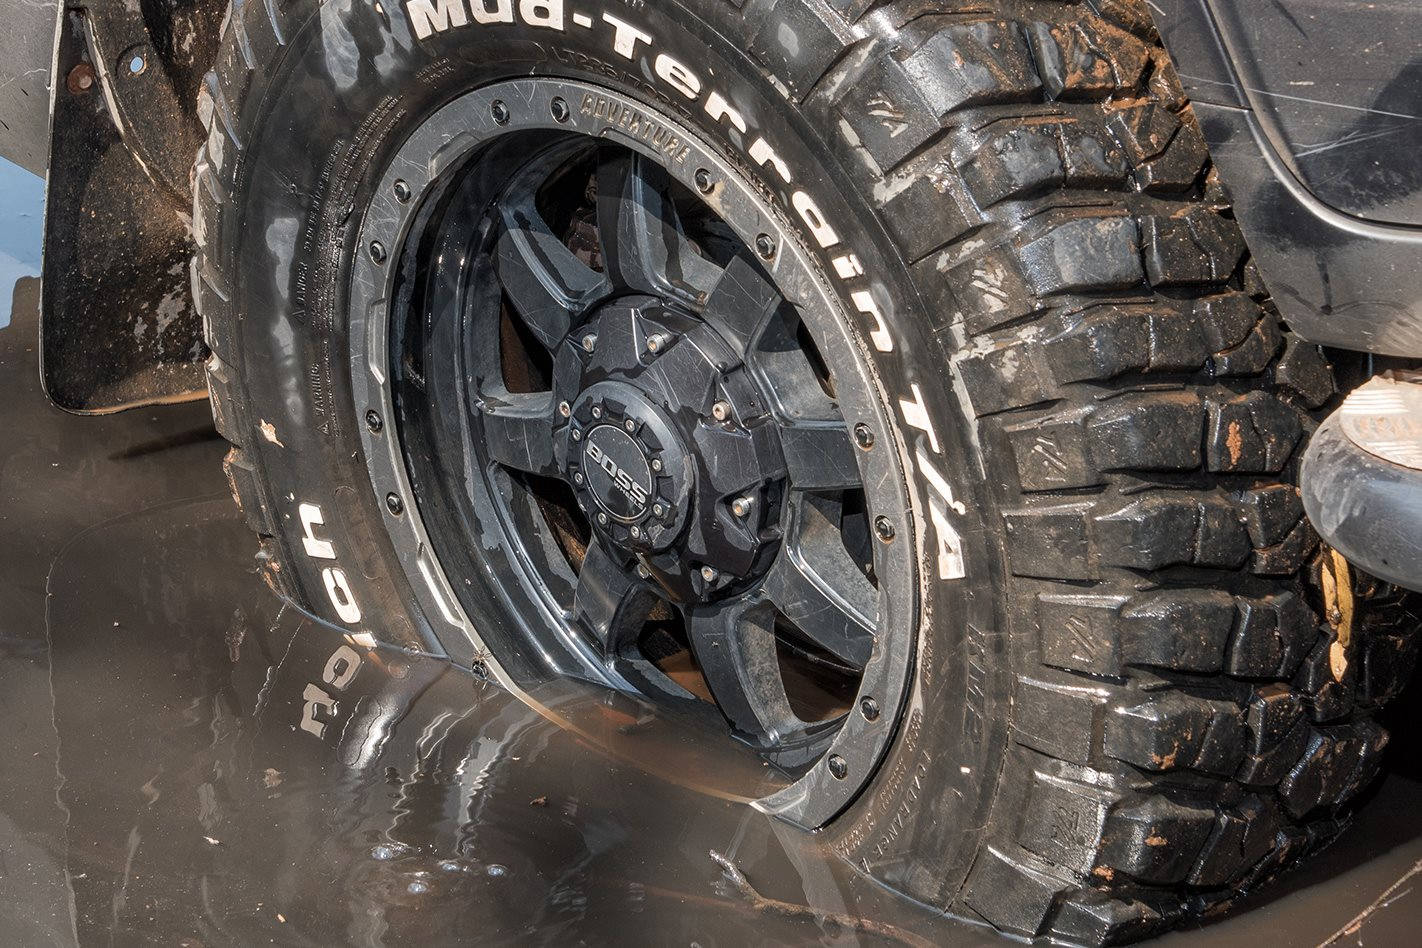 2014 Land Cruiser 200 Series wheel